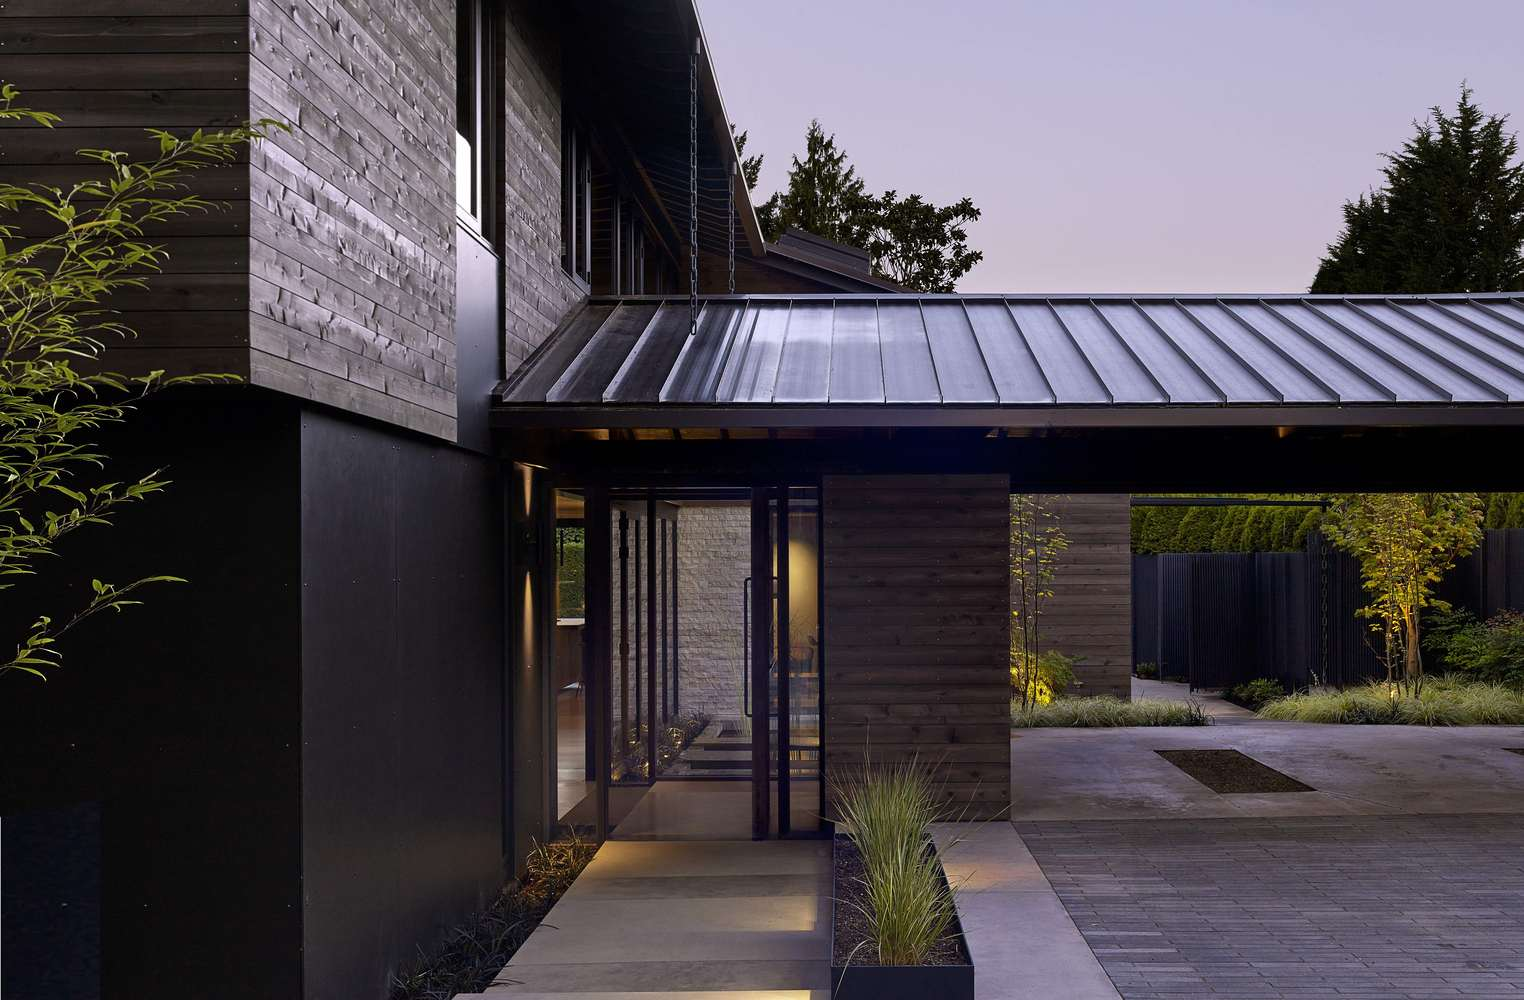 Mw works architecture - Gallery Of Laurelhurst Midcentury Mw Works Architecture Design 31